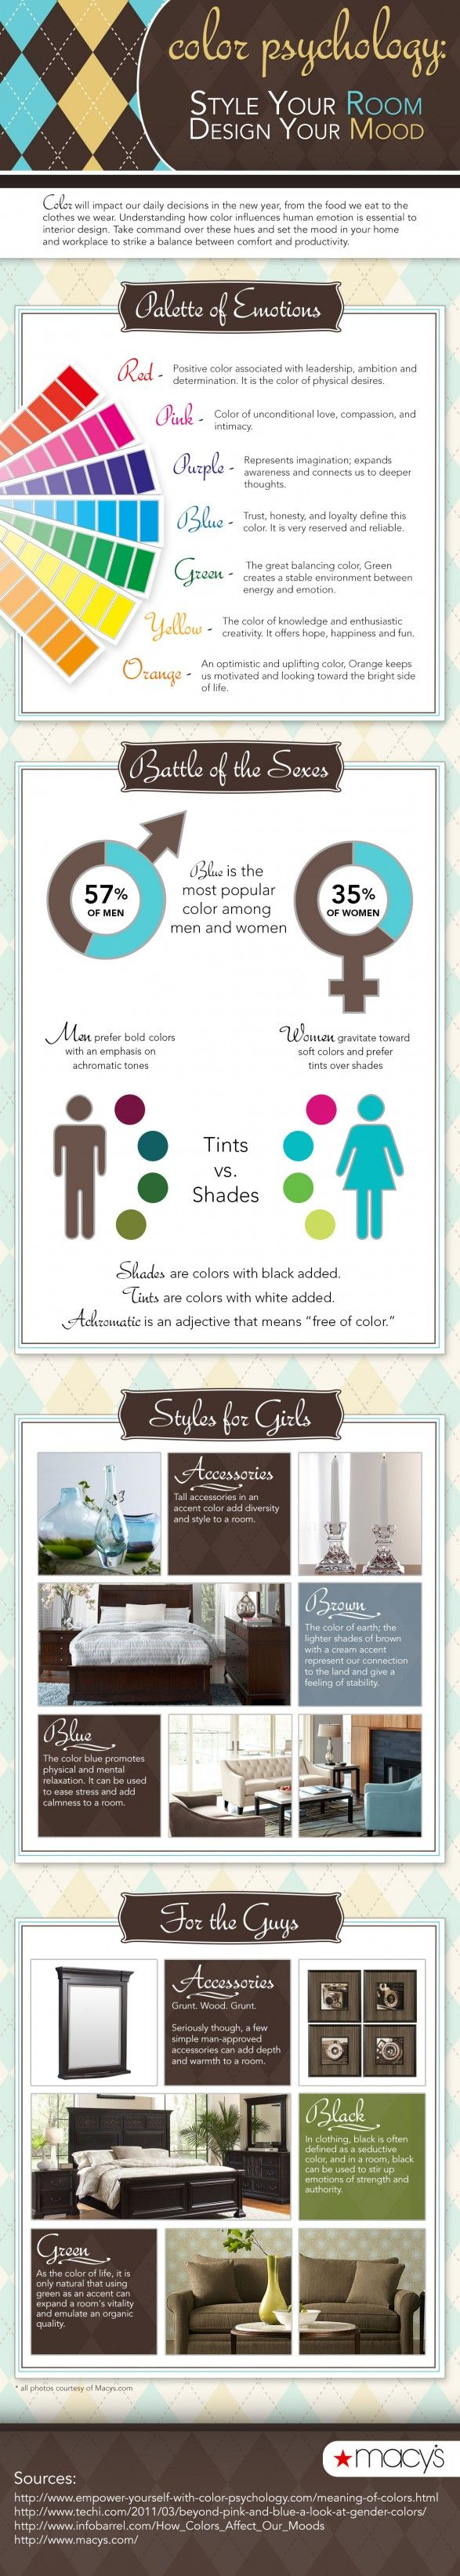 Bedroom Color Psychology 123 best color psychology images on pinterest | color psychology